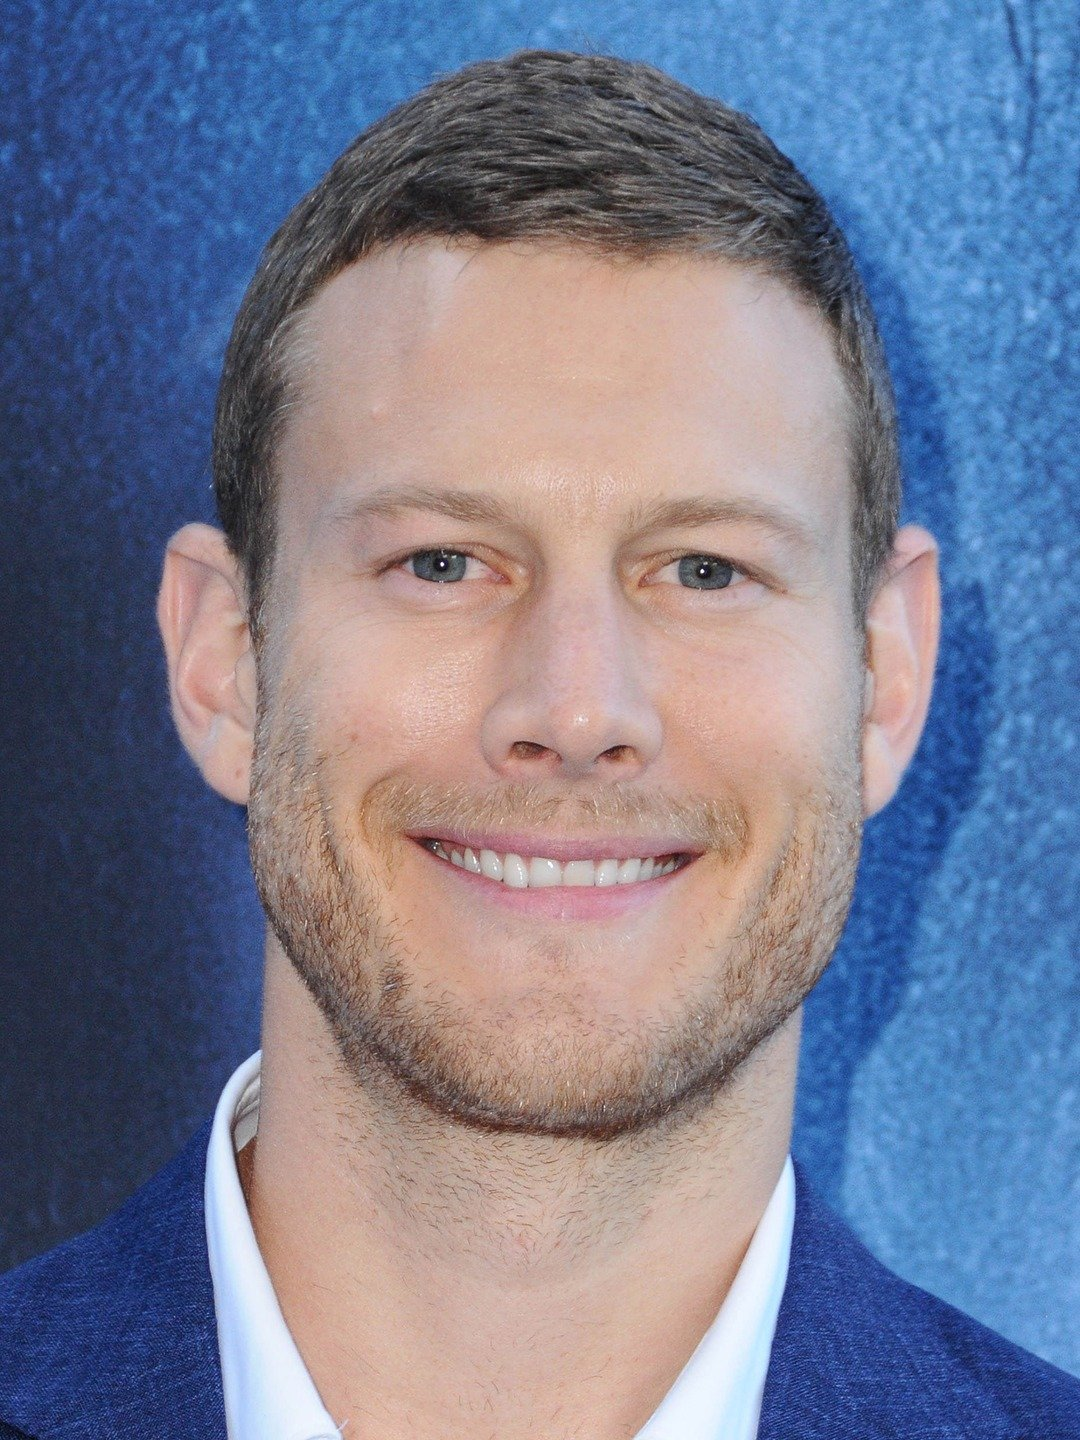 How tall is Tom Hopper?